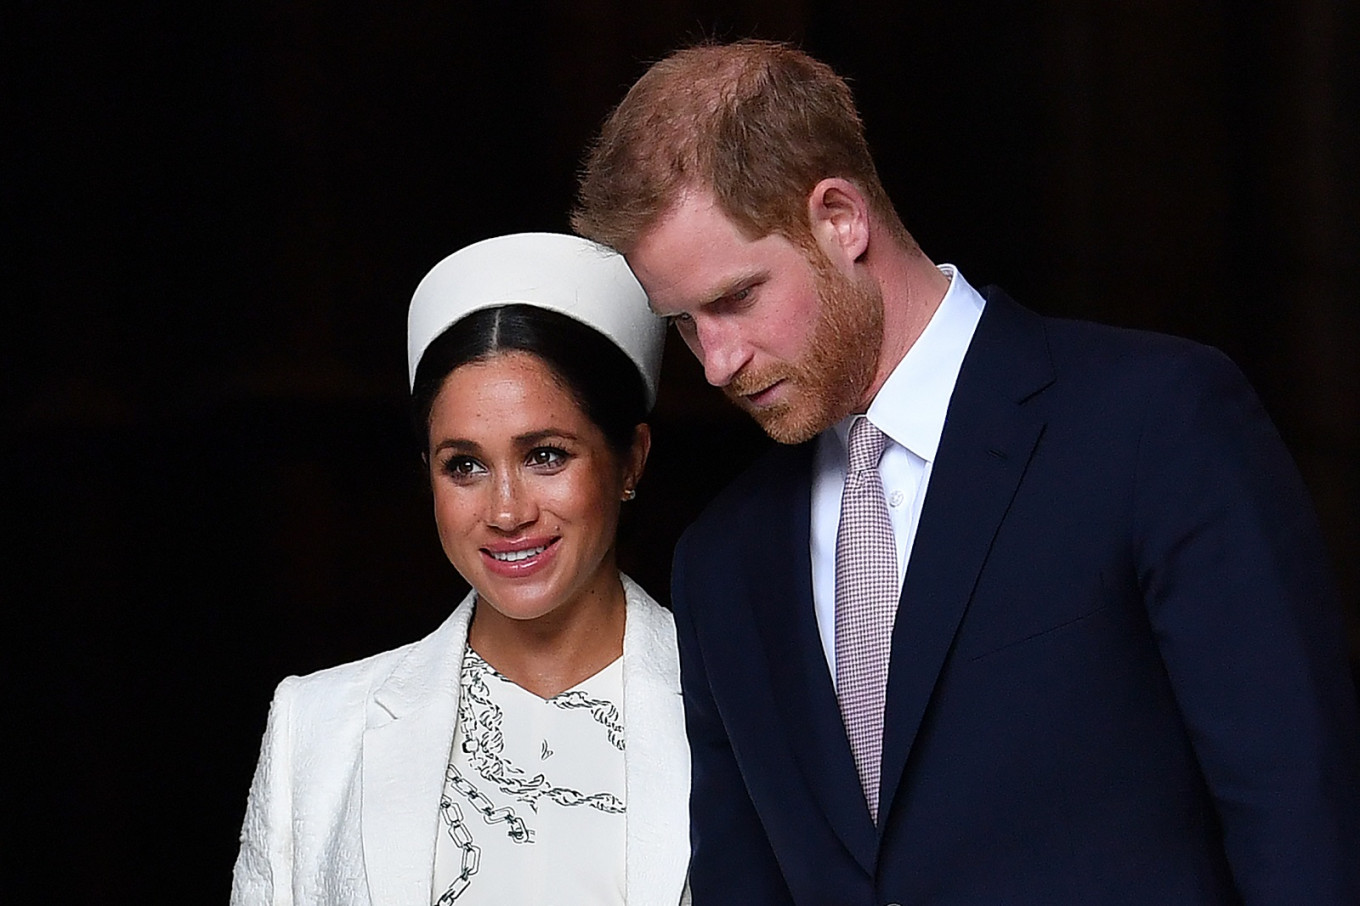 Meghan, Britain's Duchess of Sussex and wife of Prince Harry, gives birth to boy